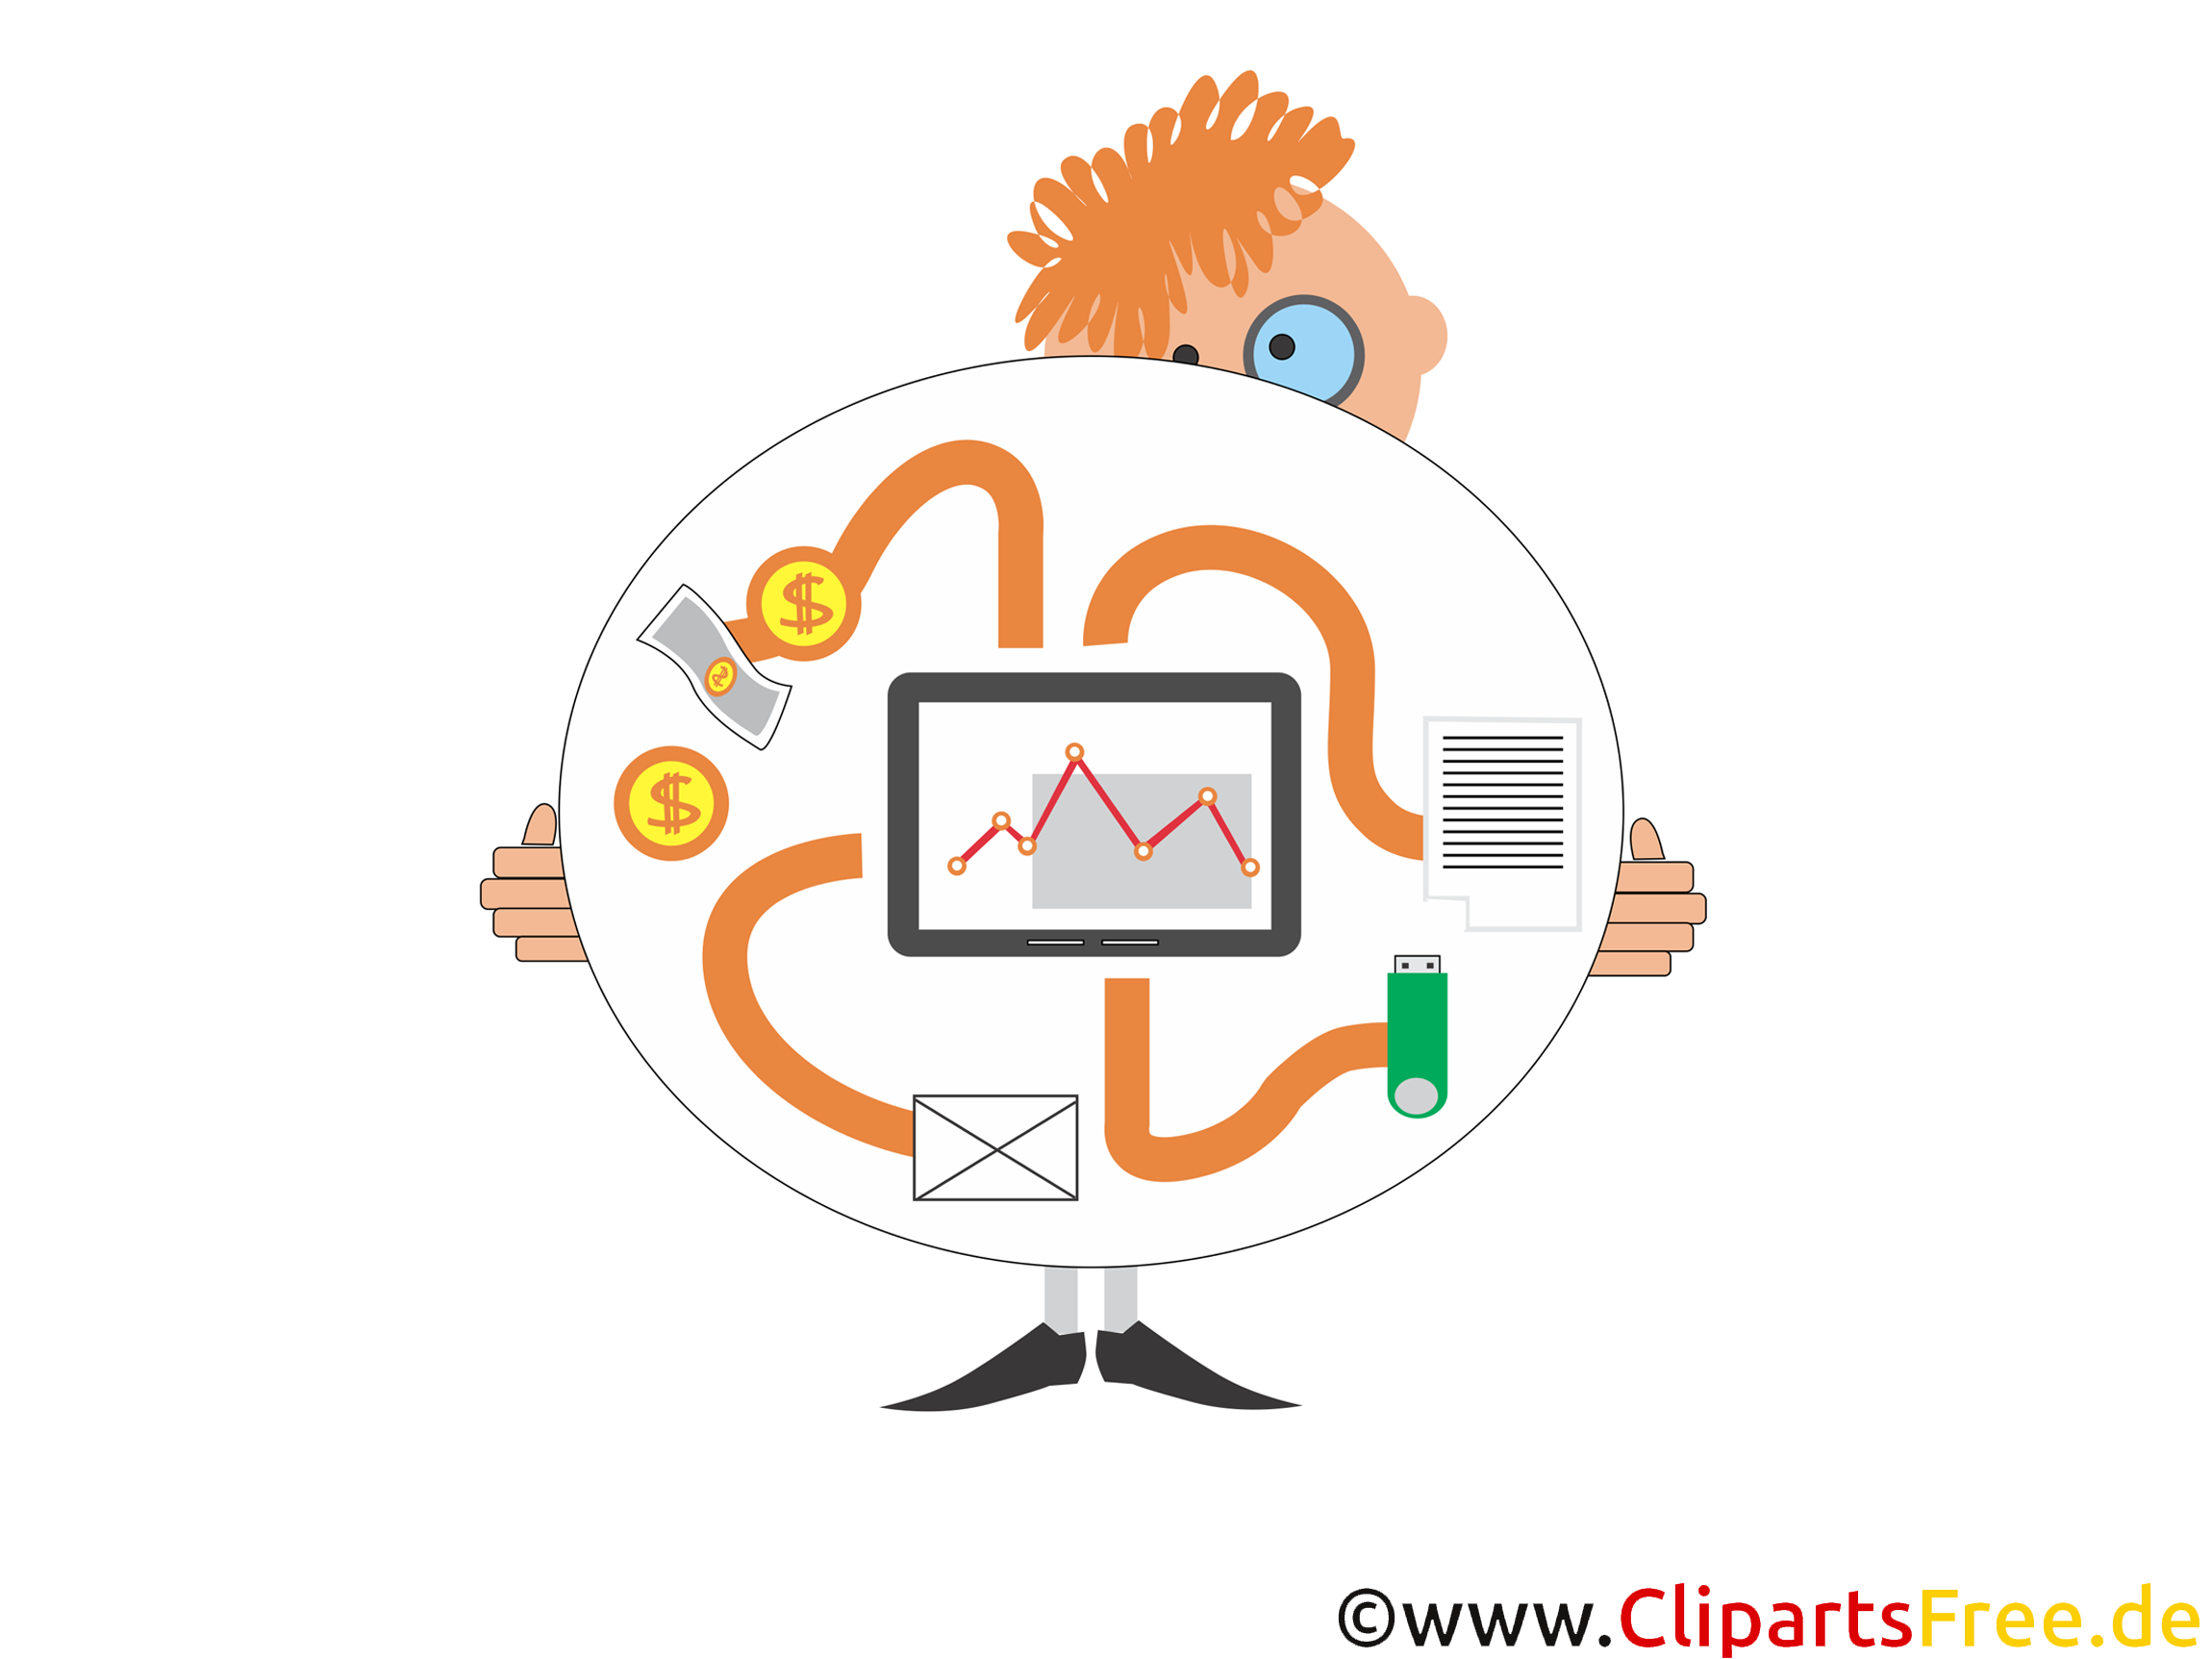 App Geldtransfer, finanzielle Technologie. Start-Up Illustration, Bild, Clipart